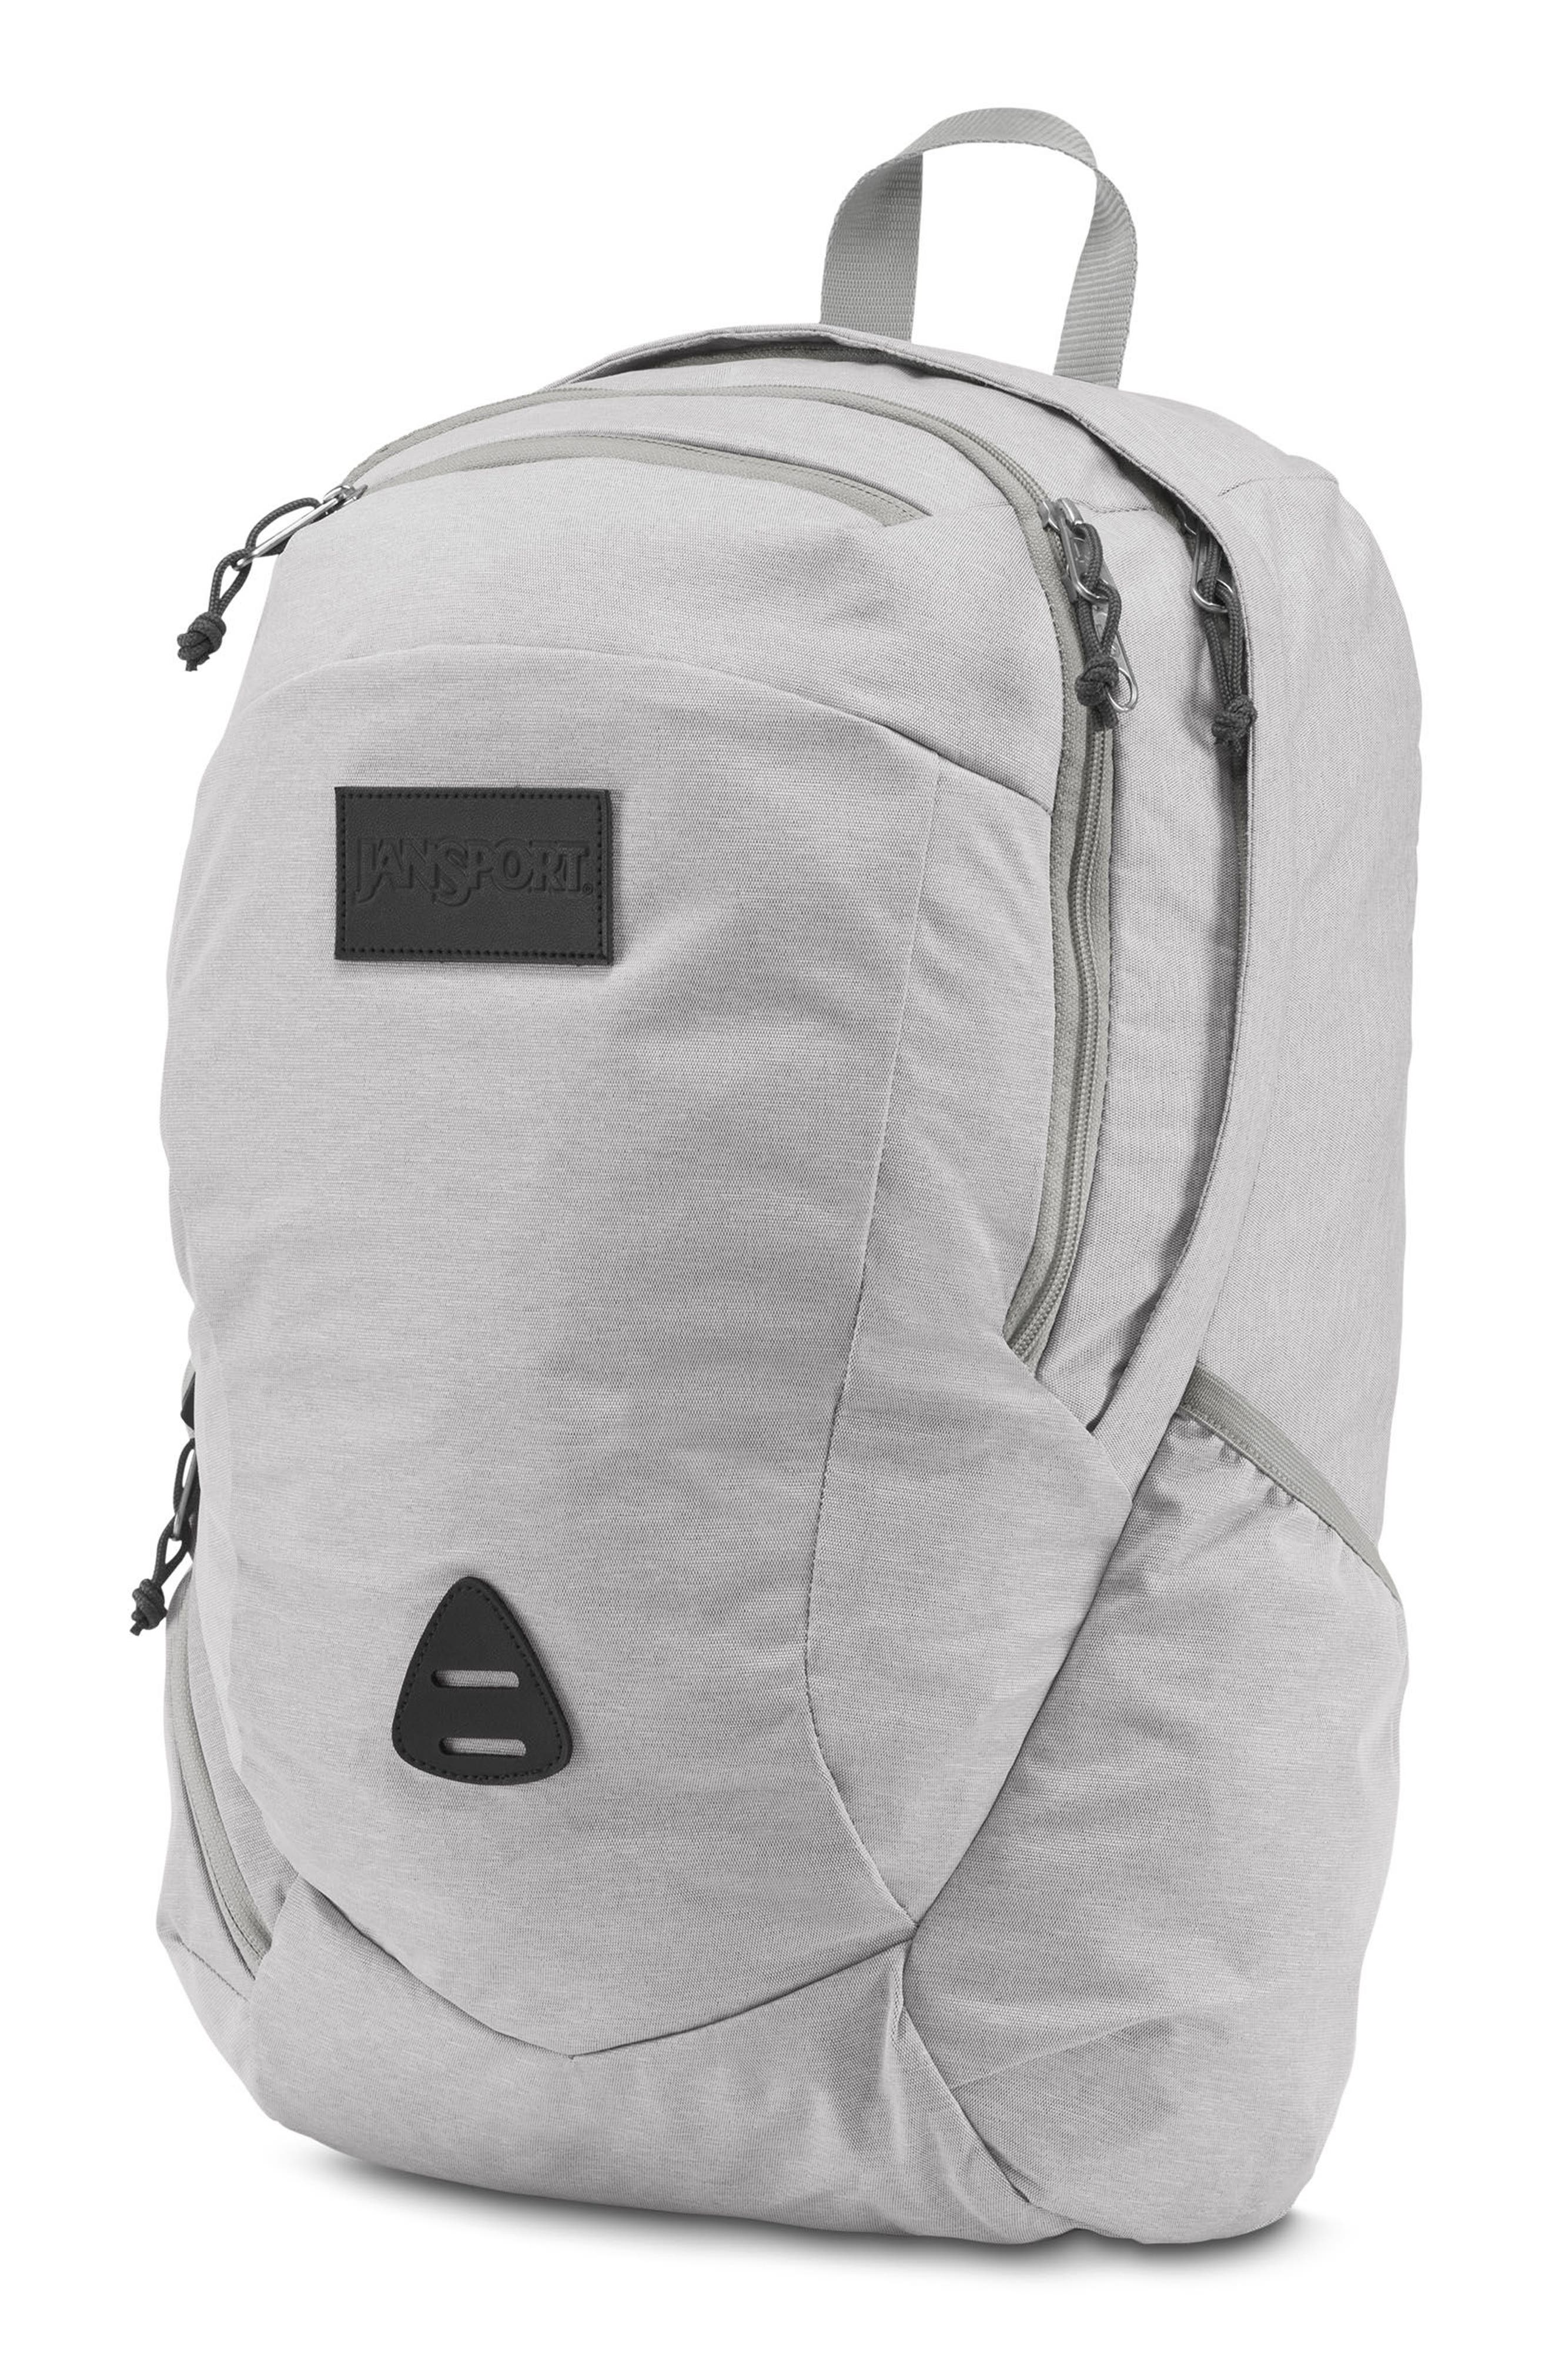 Wynwood Backpack,                             Alternate thumbnail 3, color,                             Grey Heathered Poly